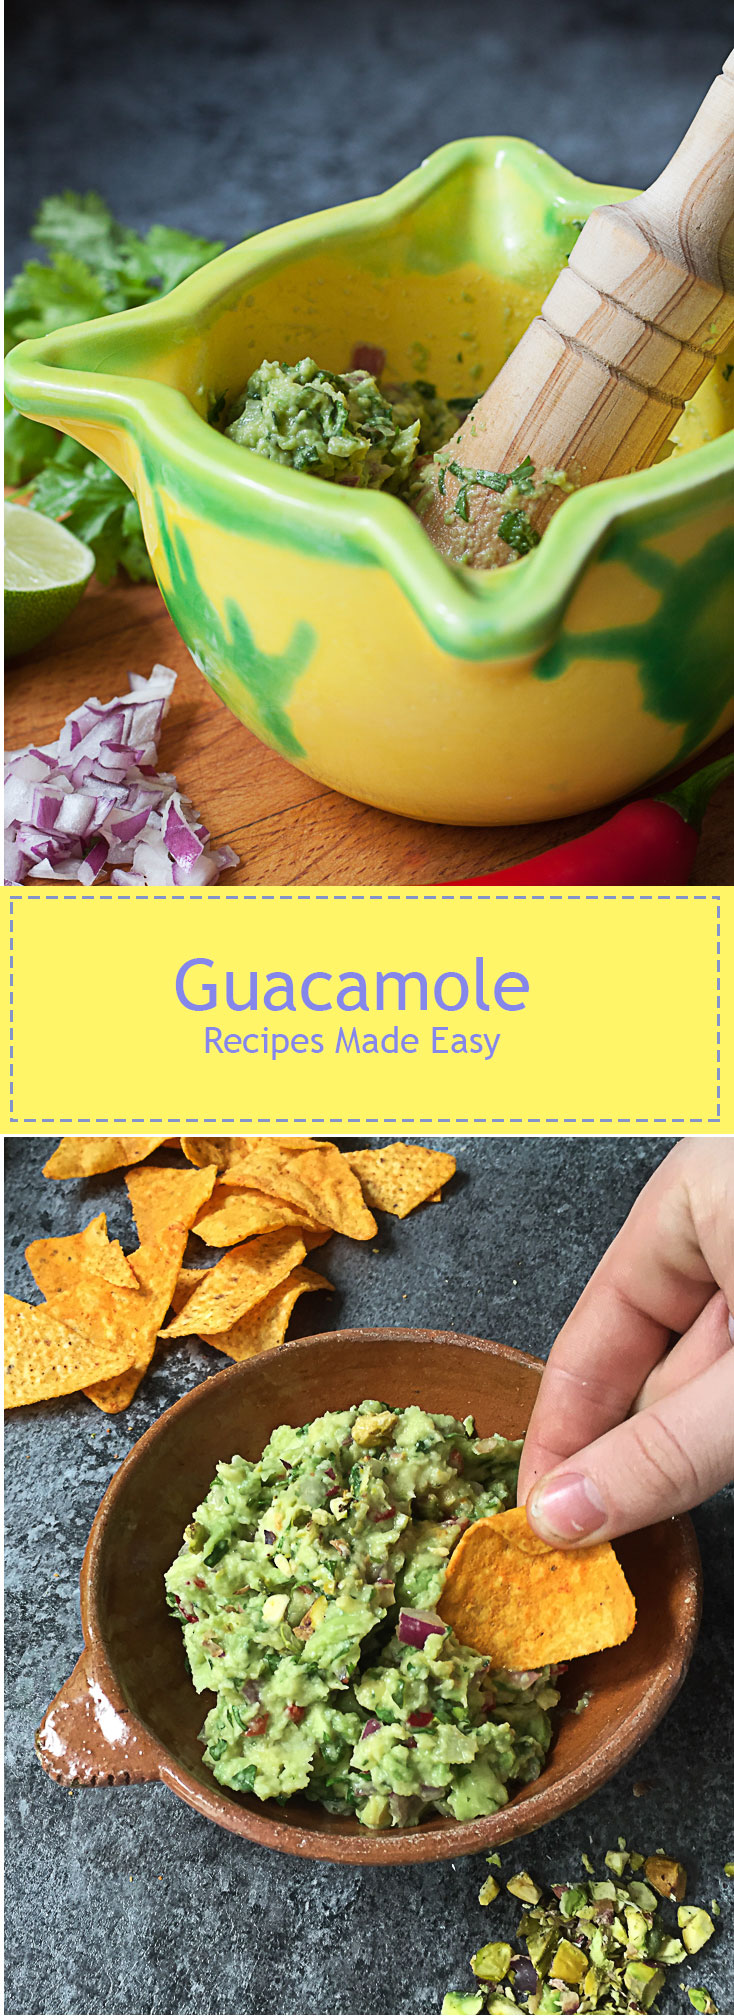 Guacamole - easy and quick to make and far superior to ready made.